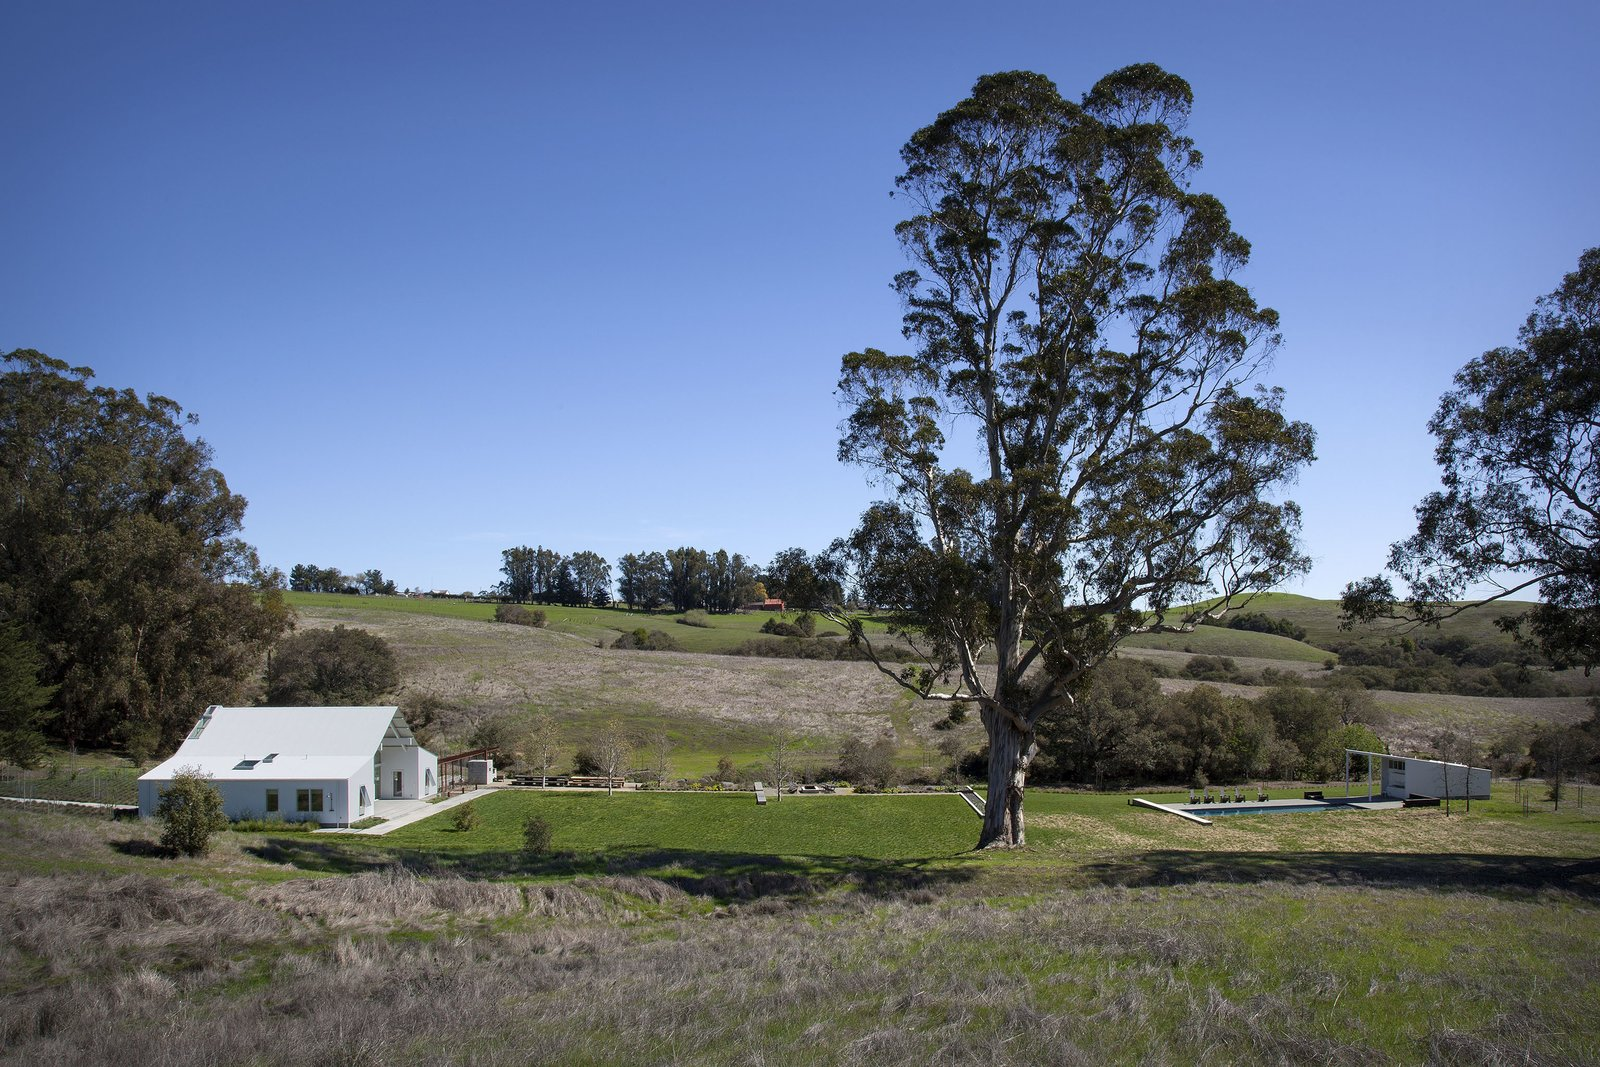 #TurnbullGriffinHaesloop #exterior #site #landscape #barn Hupomone Ranch by Turnbull Griffin Haesloop Architects